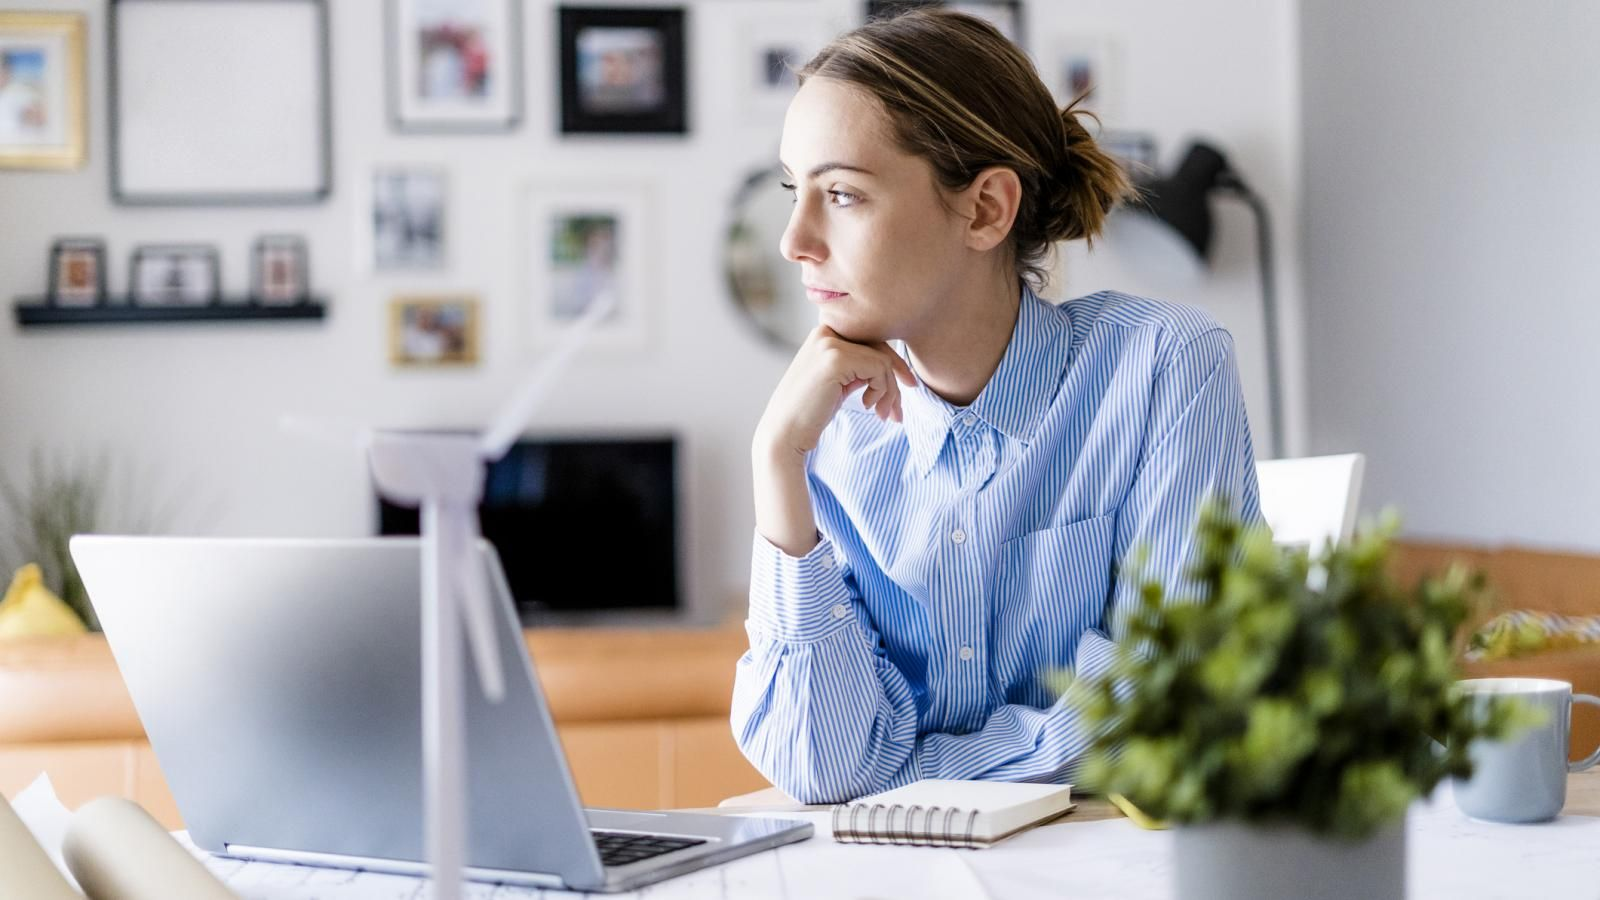 How To Maintain Work Life Balance While Working From Home